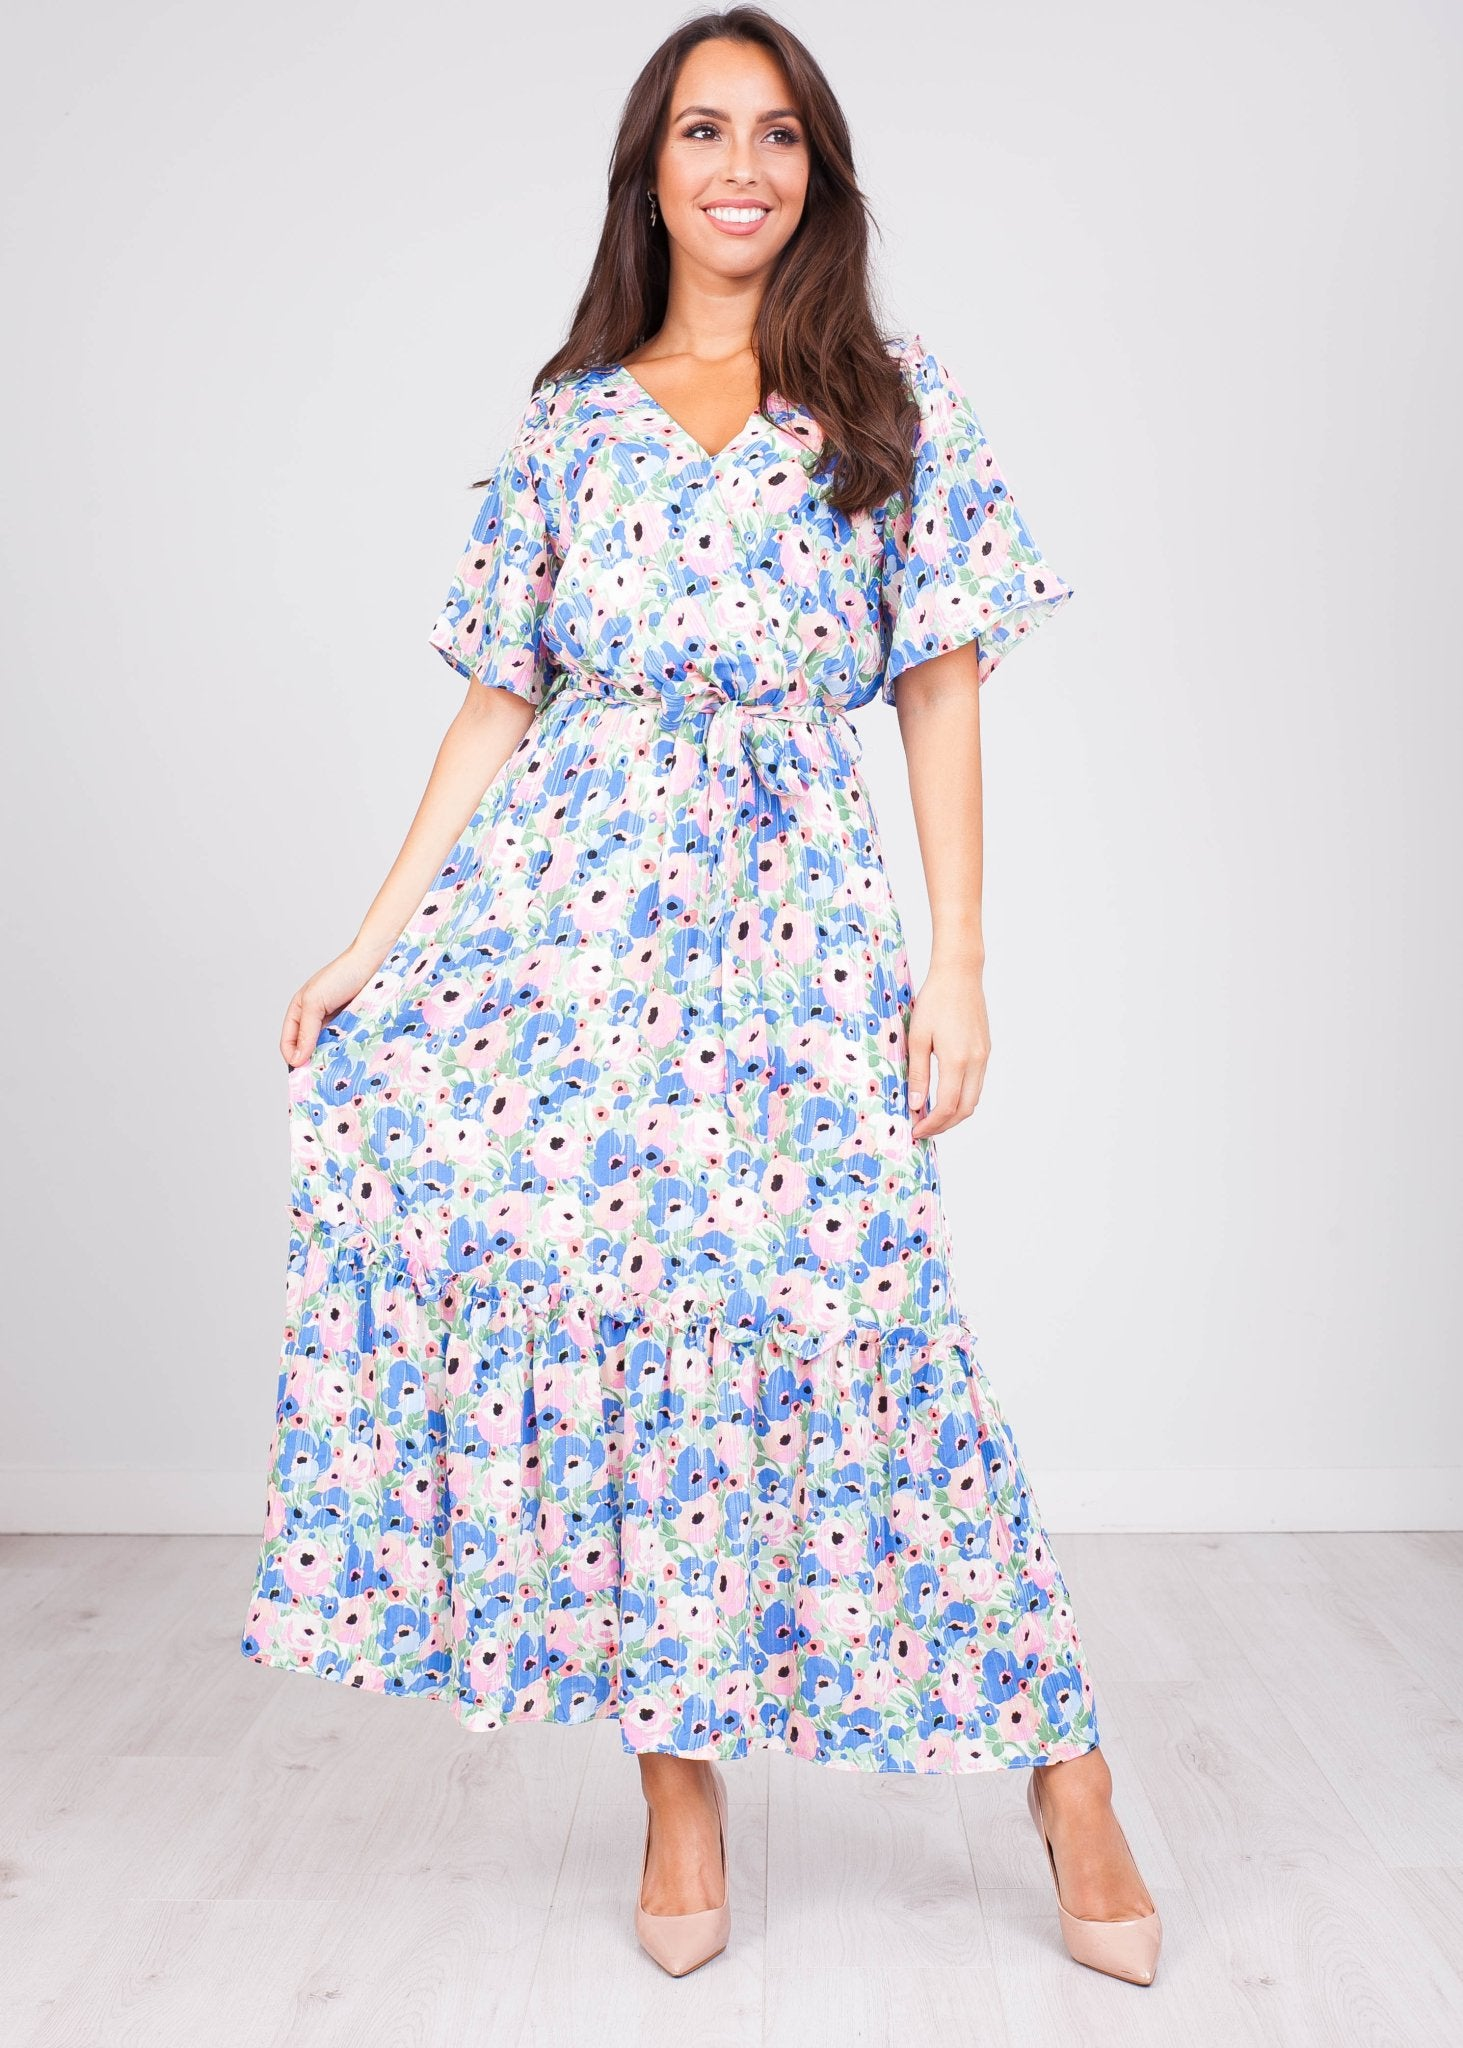 FiFi Blue Floral Midi Dress - The Walk in Wardrobe